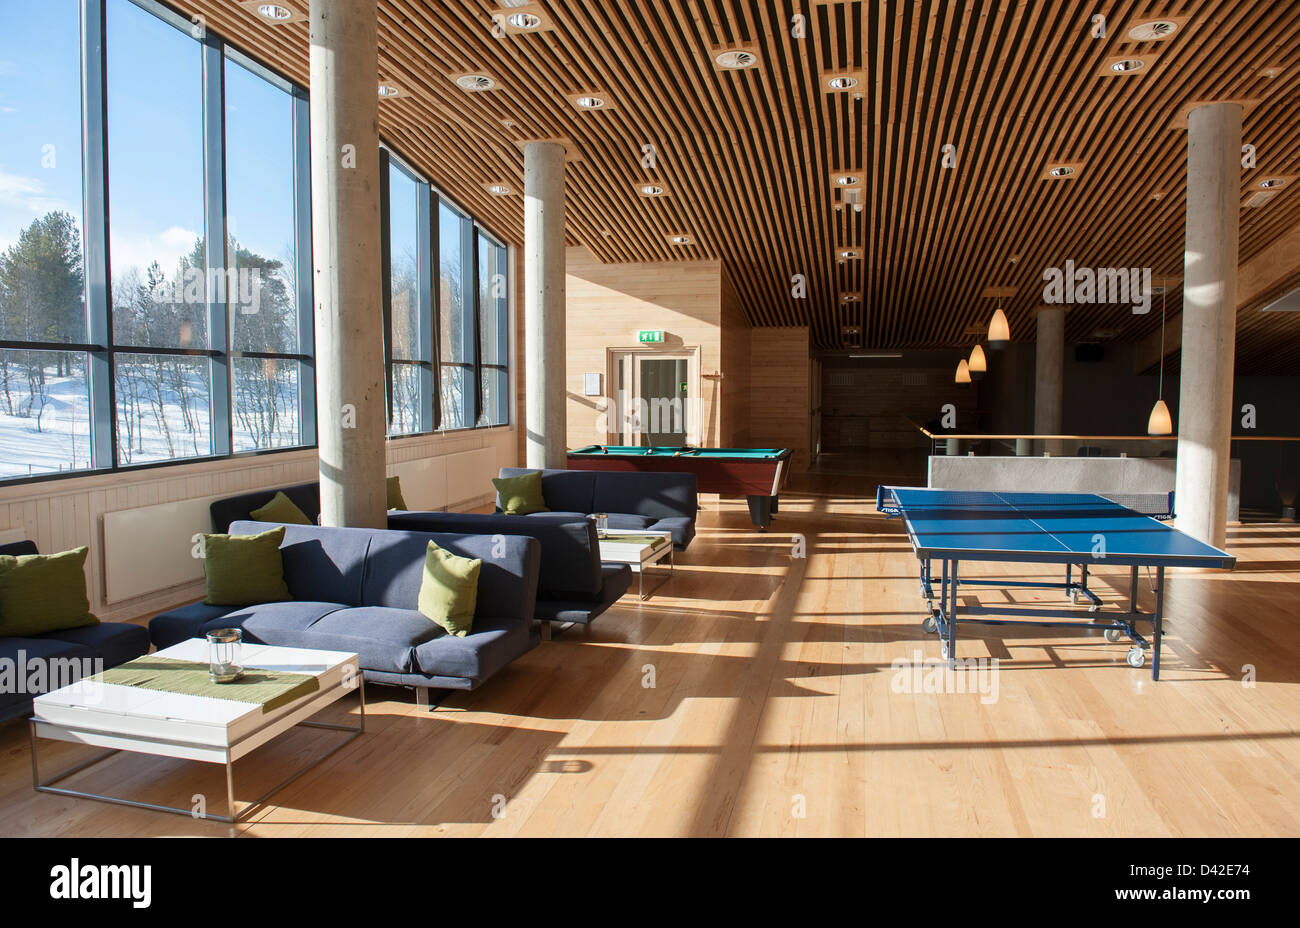 First floor with billiard, table tennis and lounge area at the Geilo Kulturkyrkje in Geilo, Hallingdal, Norway - Stock Image